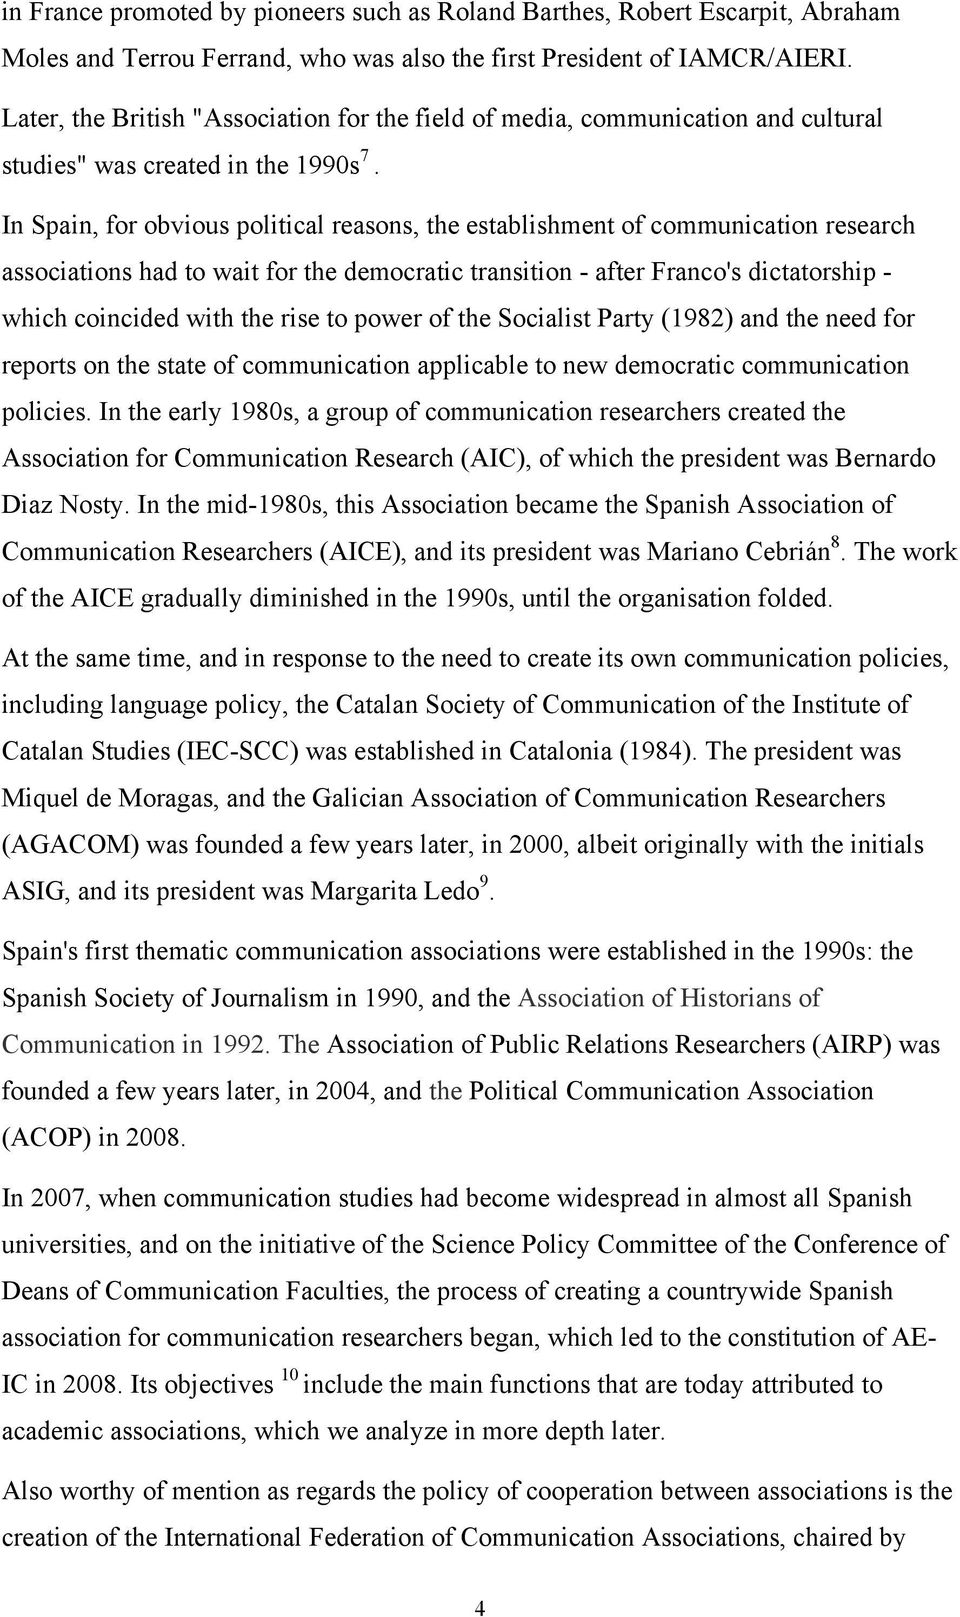 In Spain, for obvious political reasons, the establishment of communication research associations had to wait for the democratic transition - after Franco's dictatorship - which coincided with the